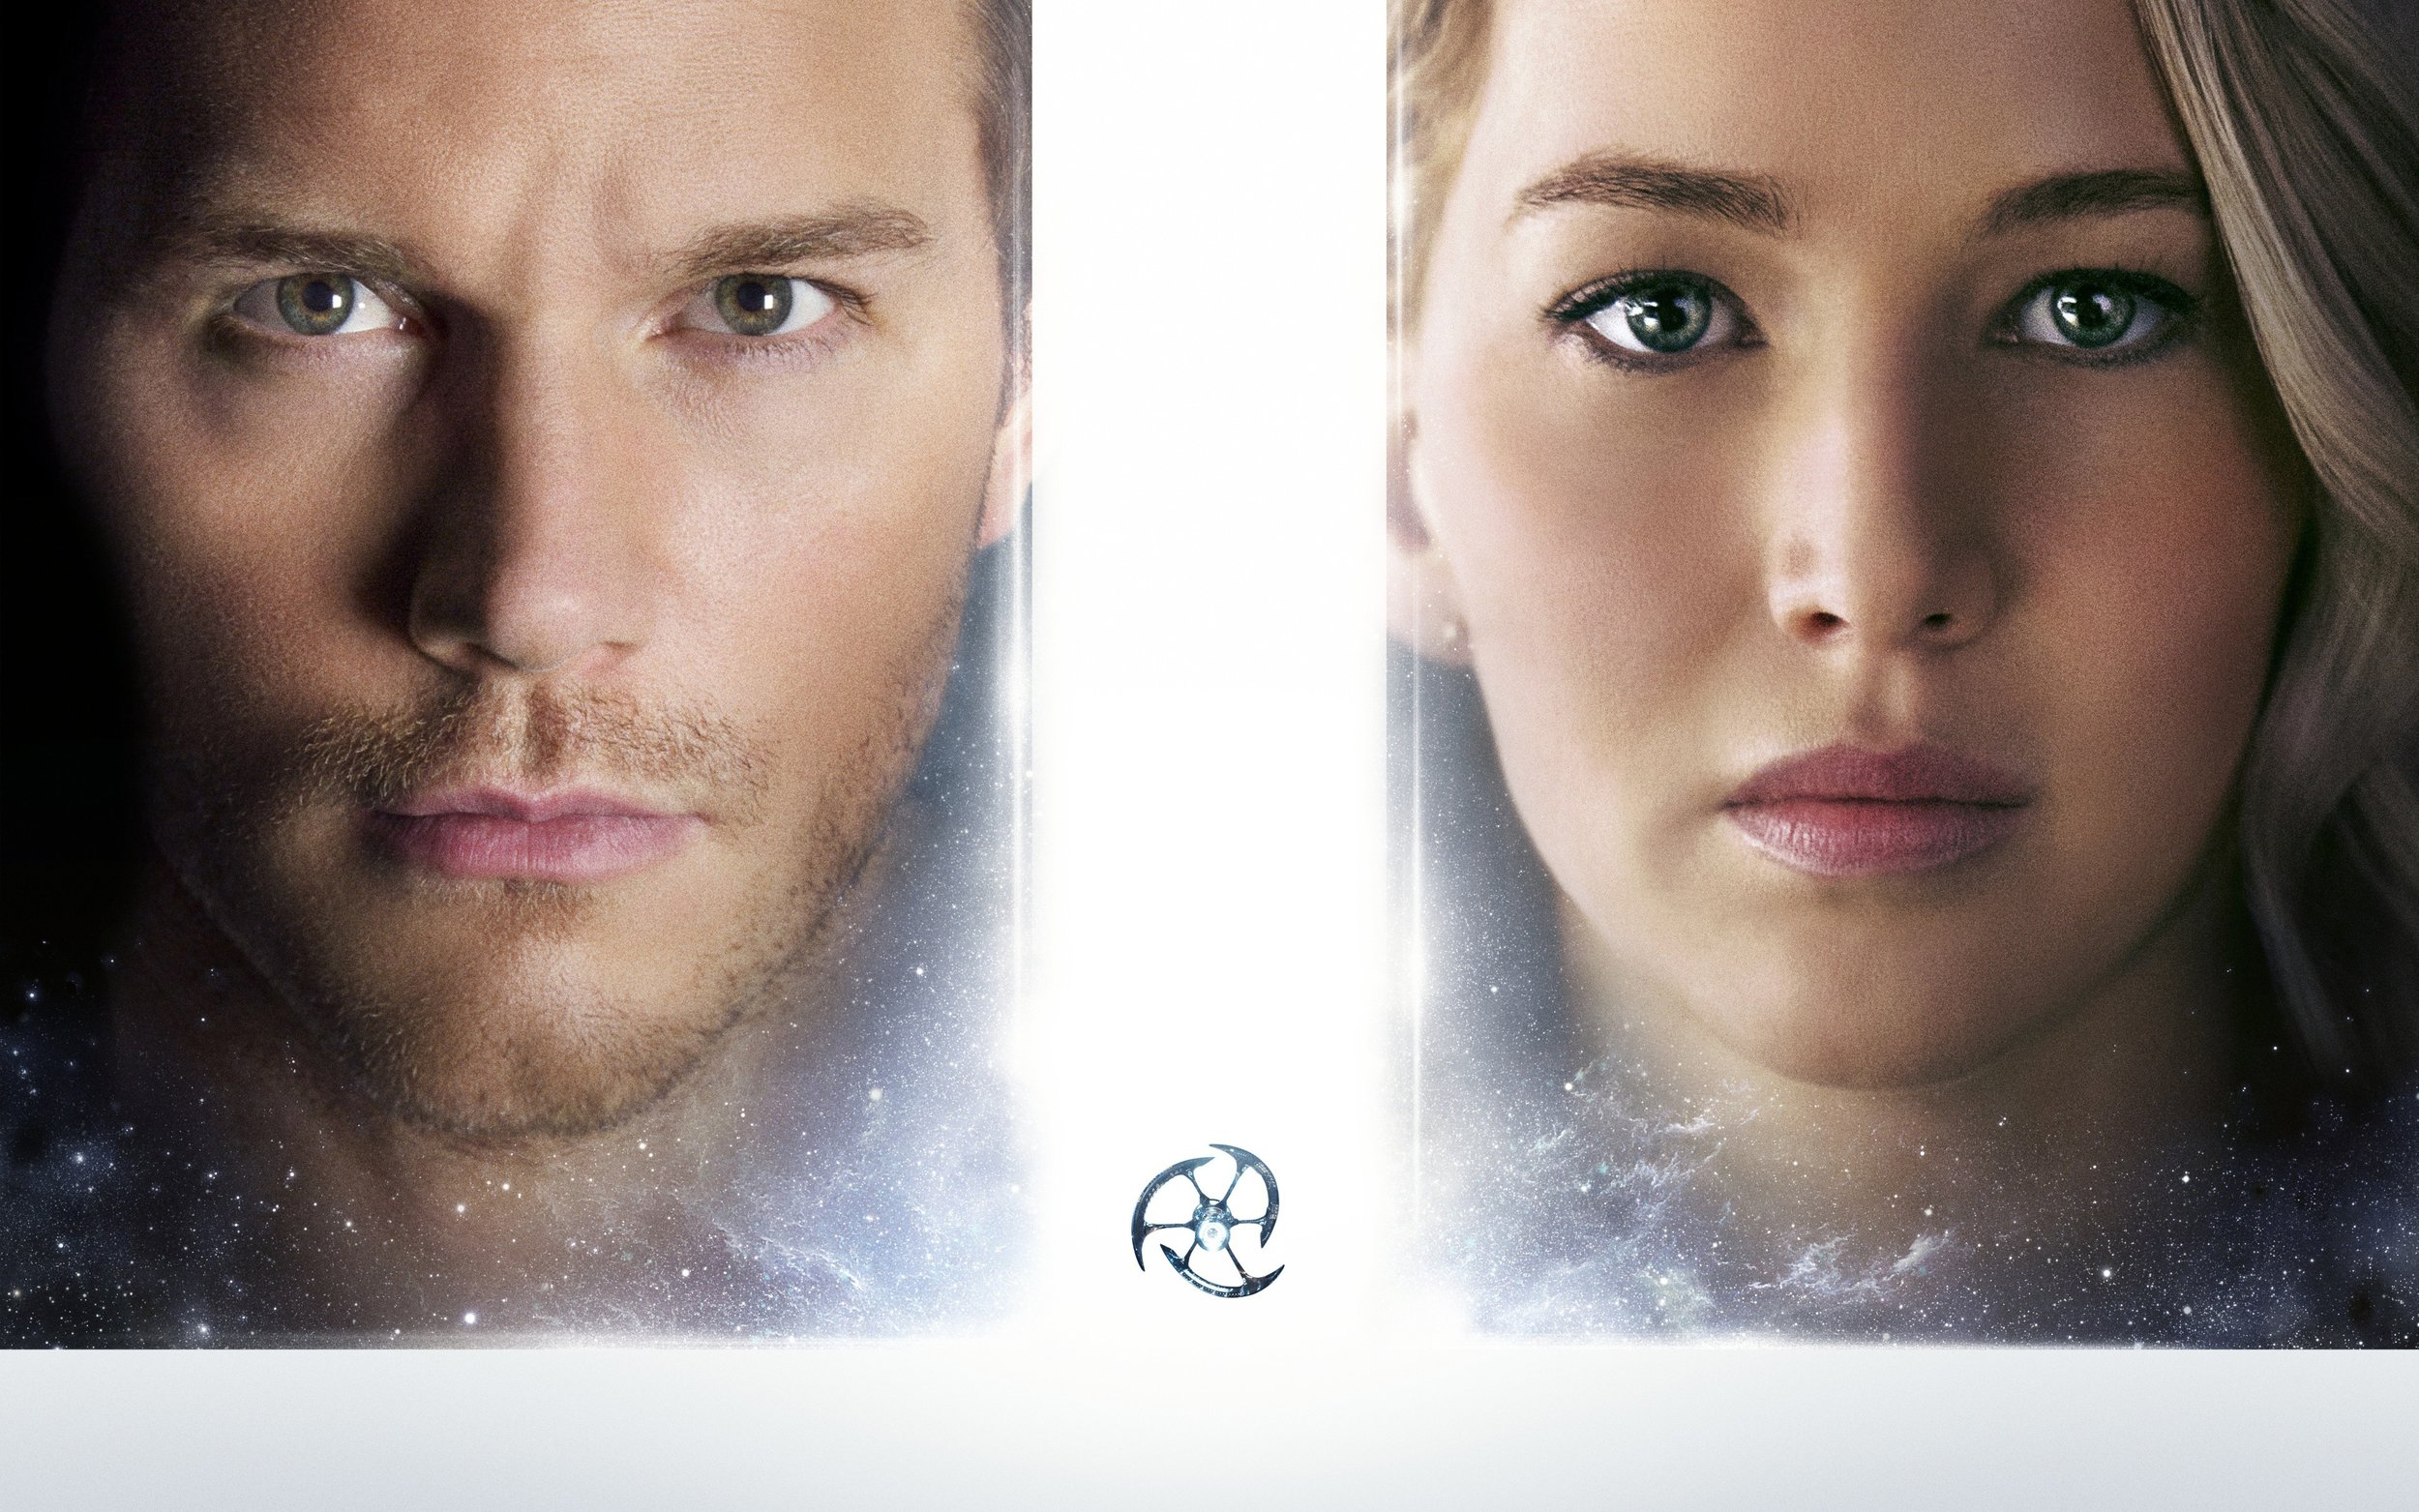 Passengers-Movie-Wallpapers-2.jpg